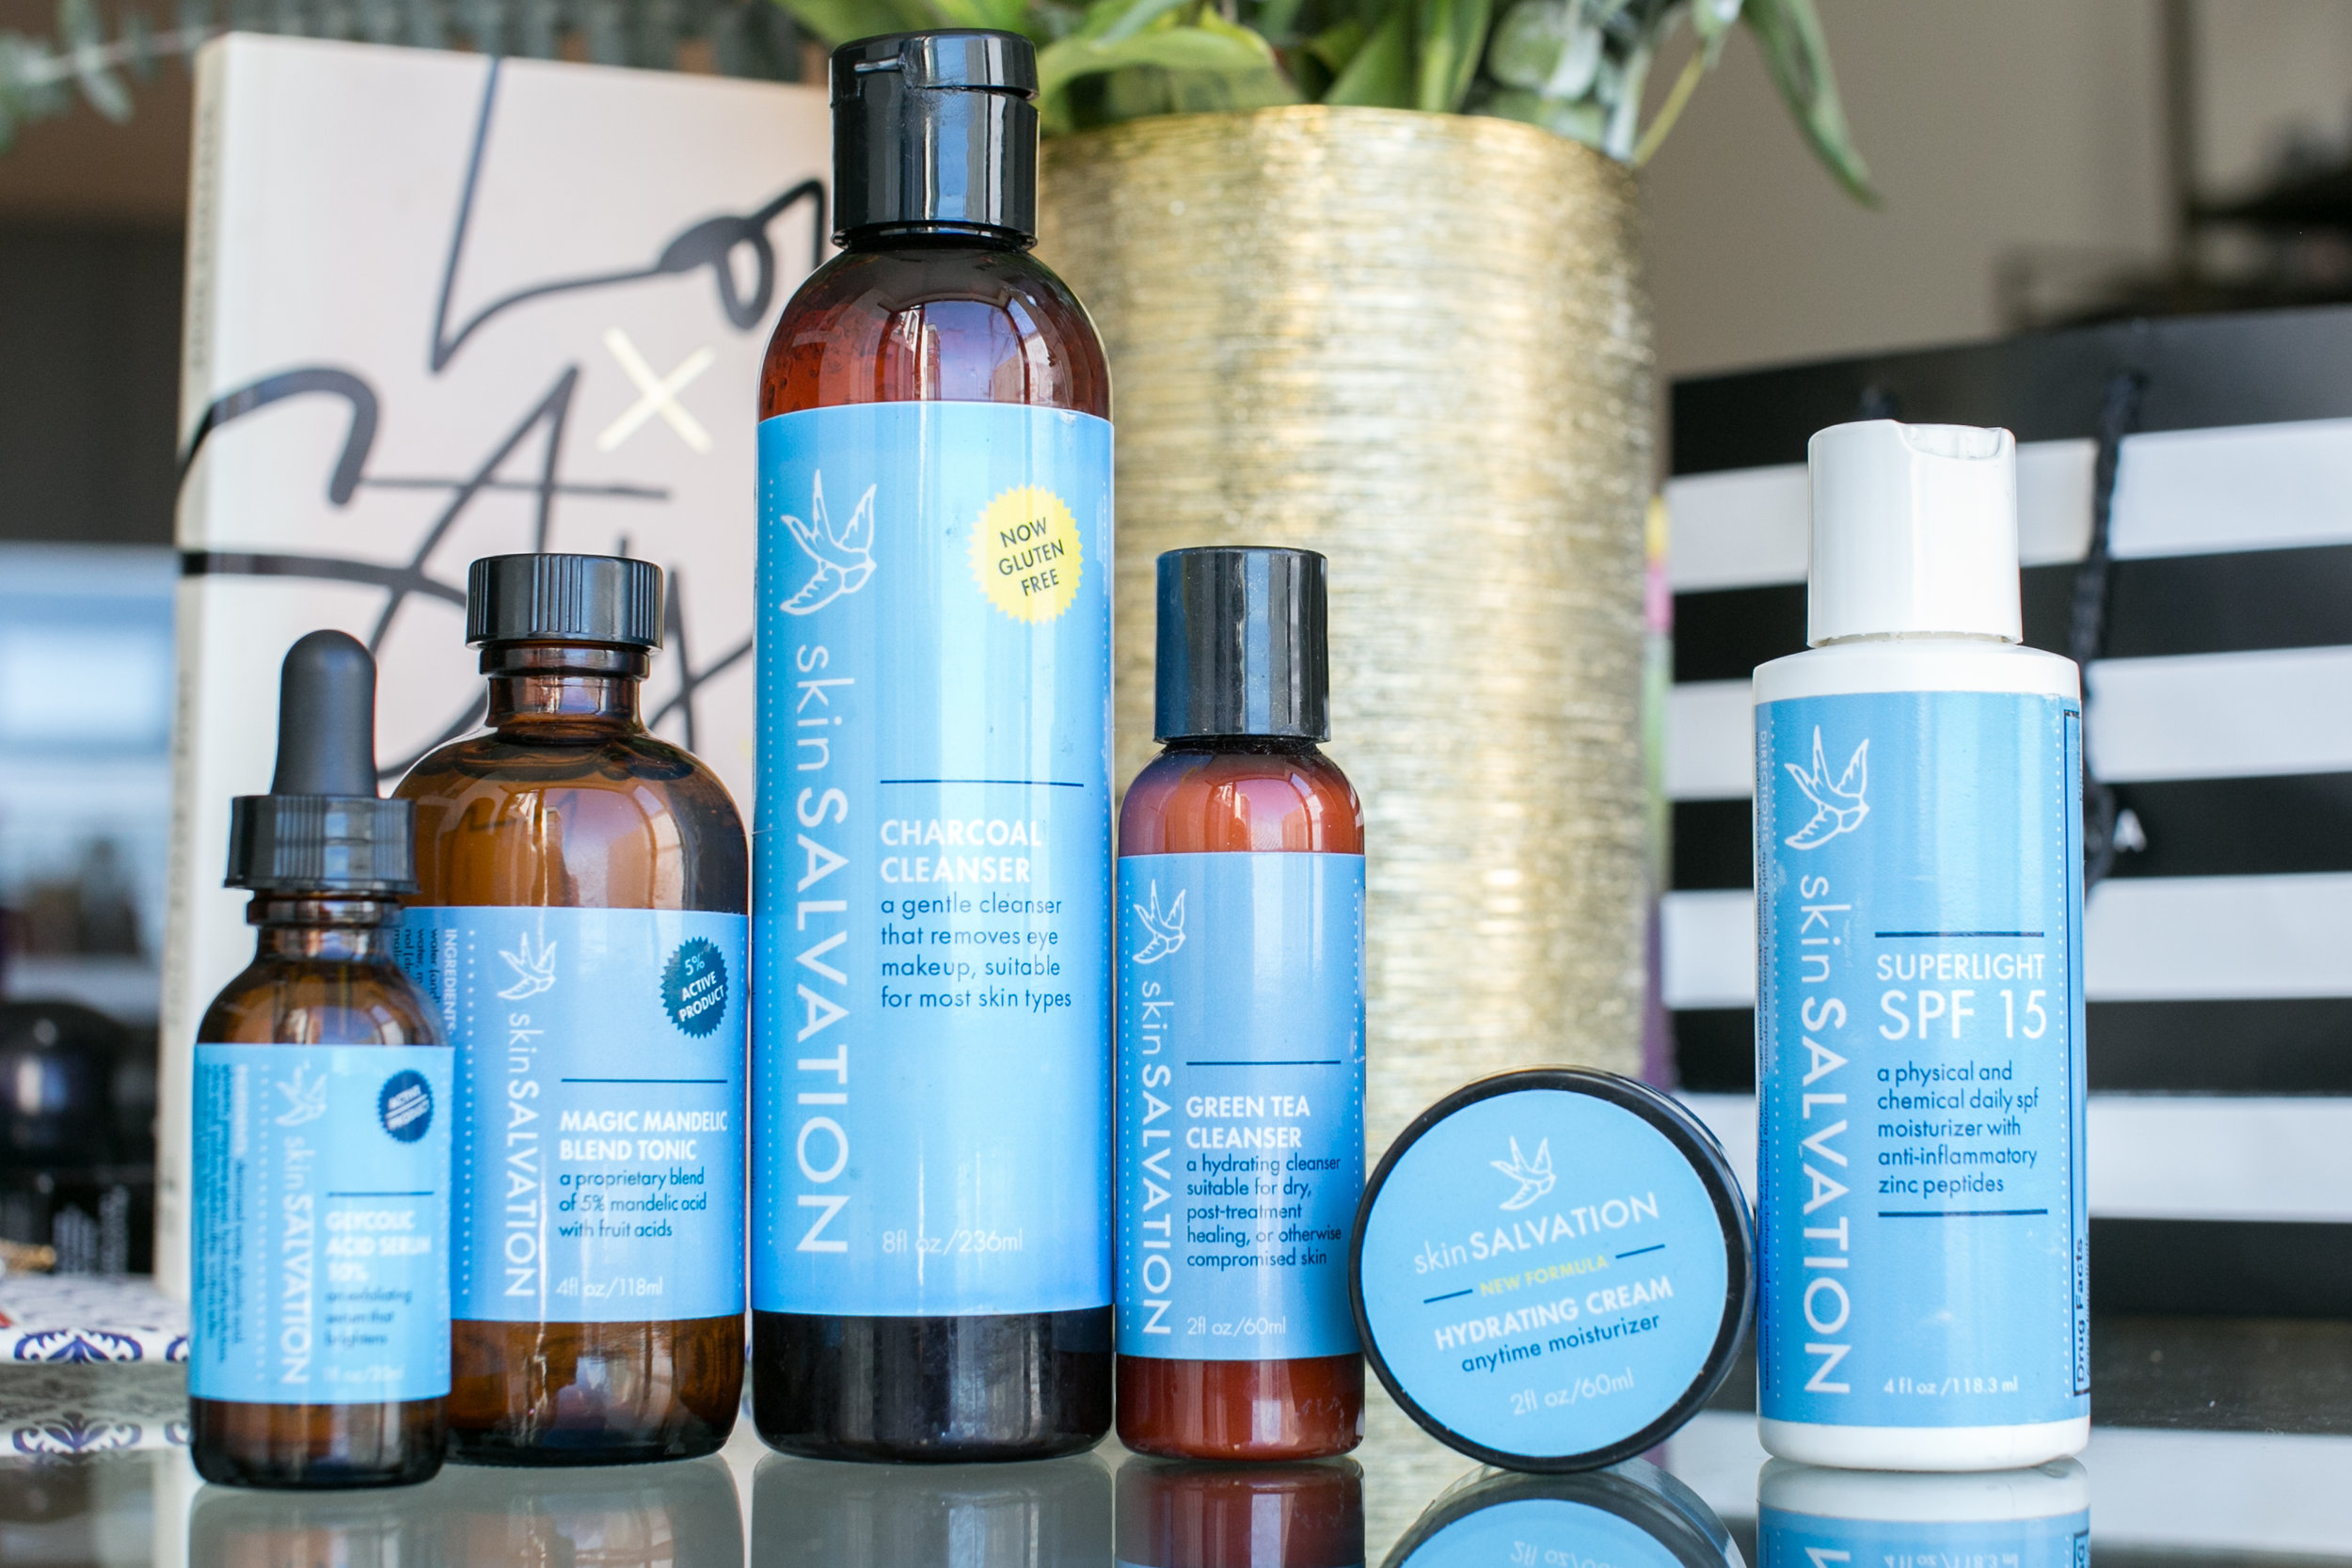 Skin Salvation products